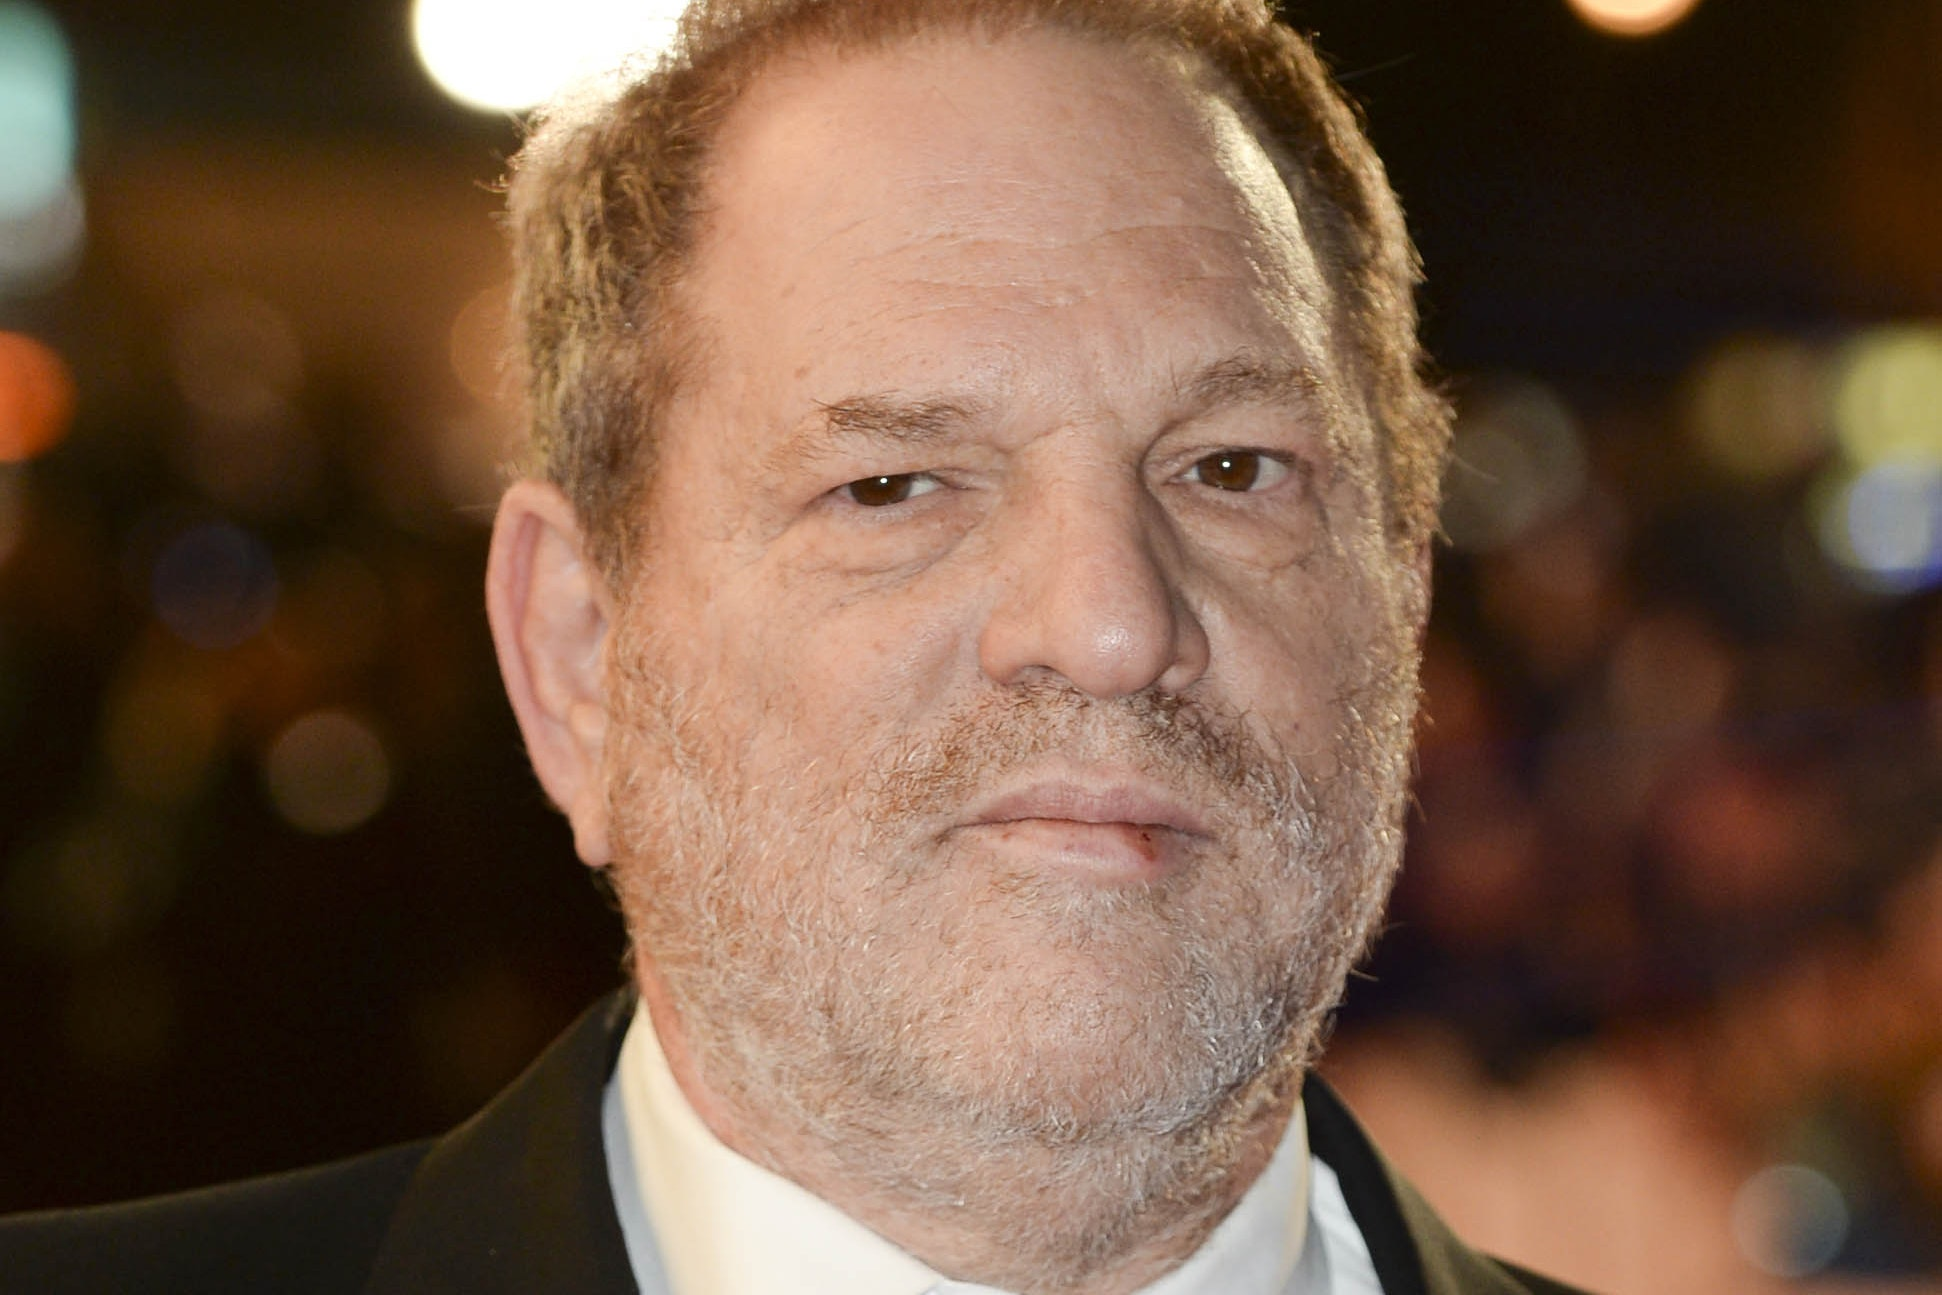 Harvey Weinstein was accused of sexual harassment and assault by dozens of women (Antony Devlin/PA)